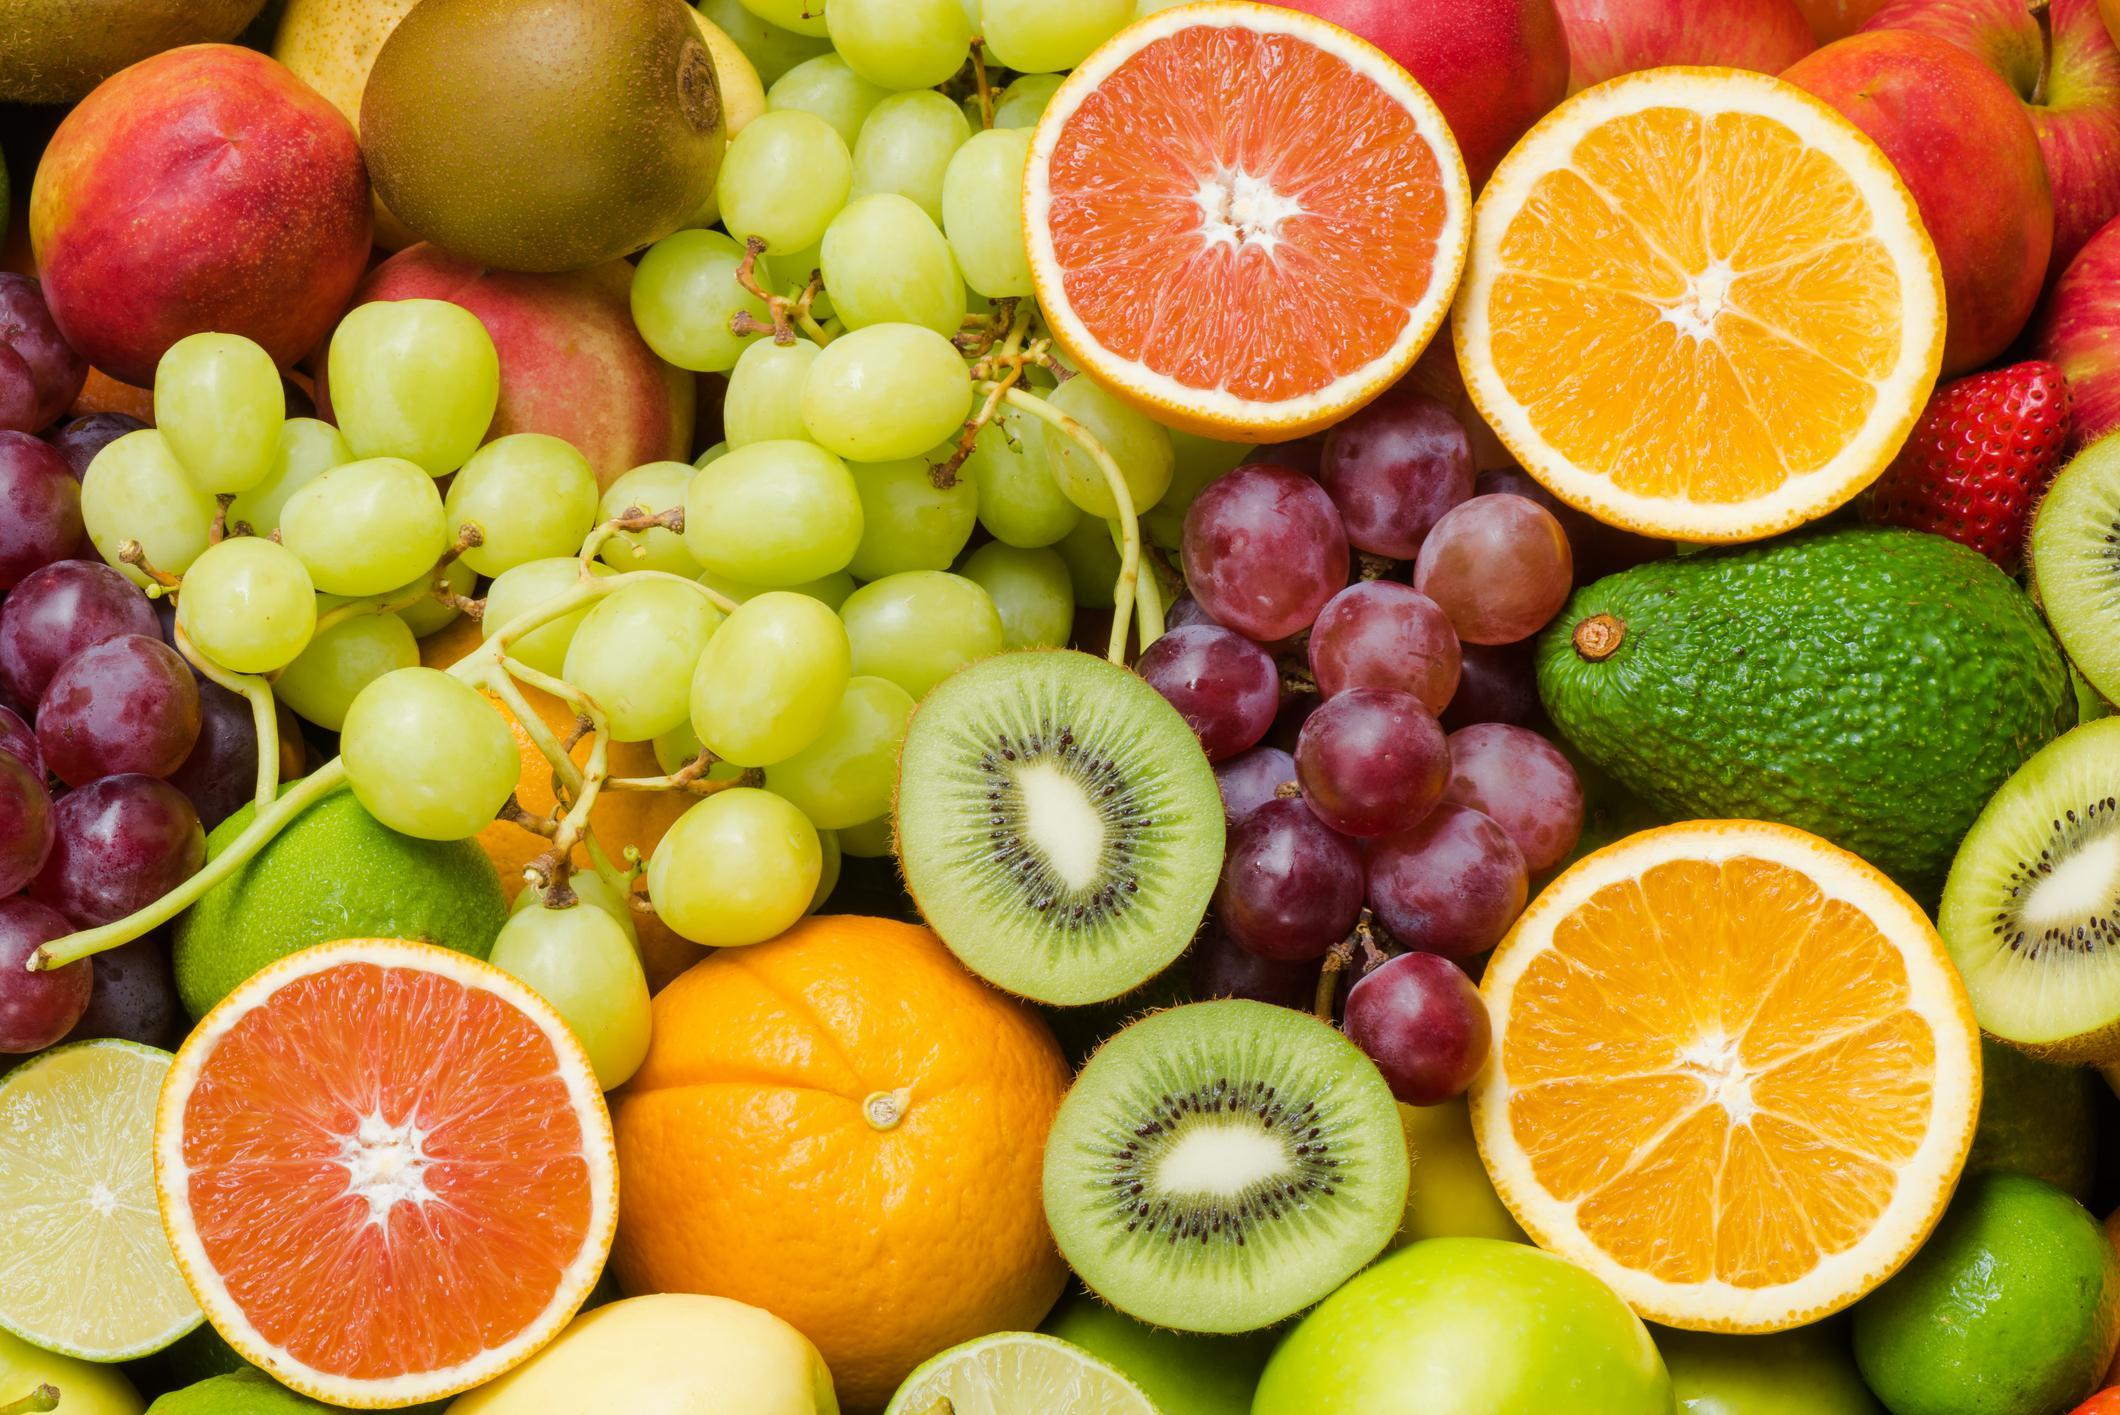 which fruits contain the most sugar